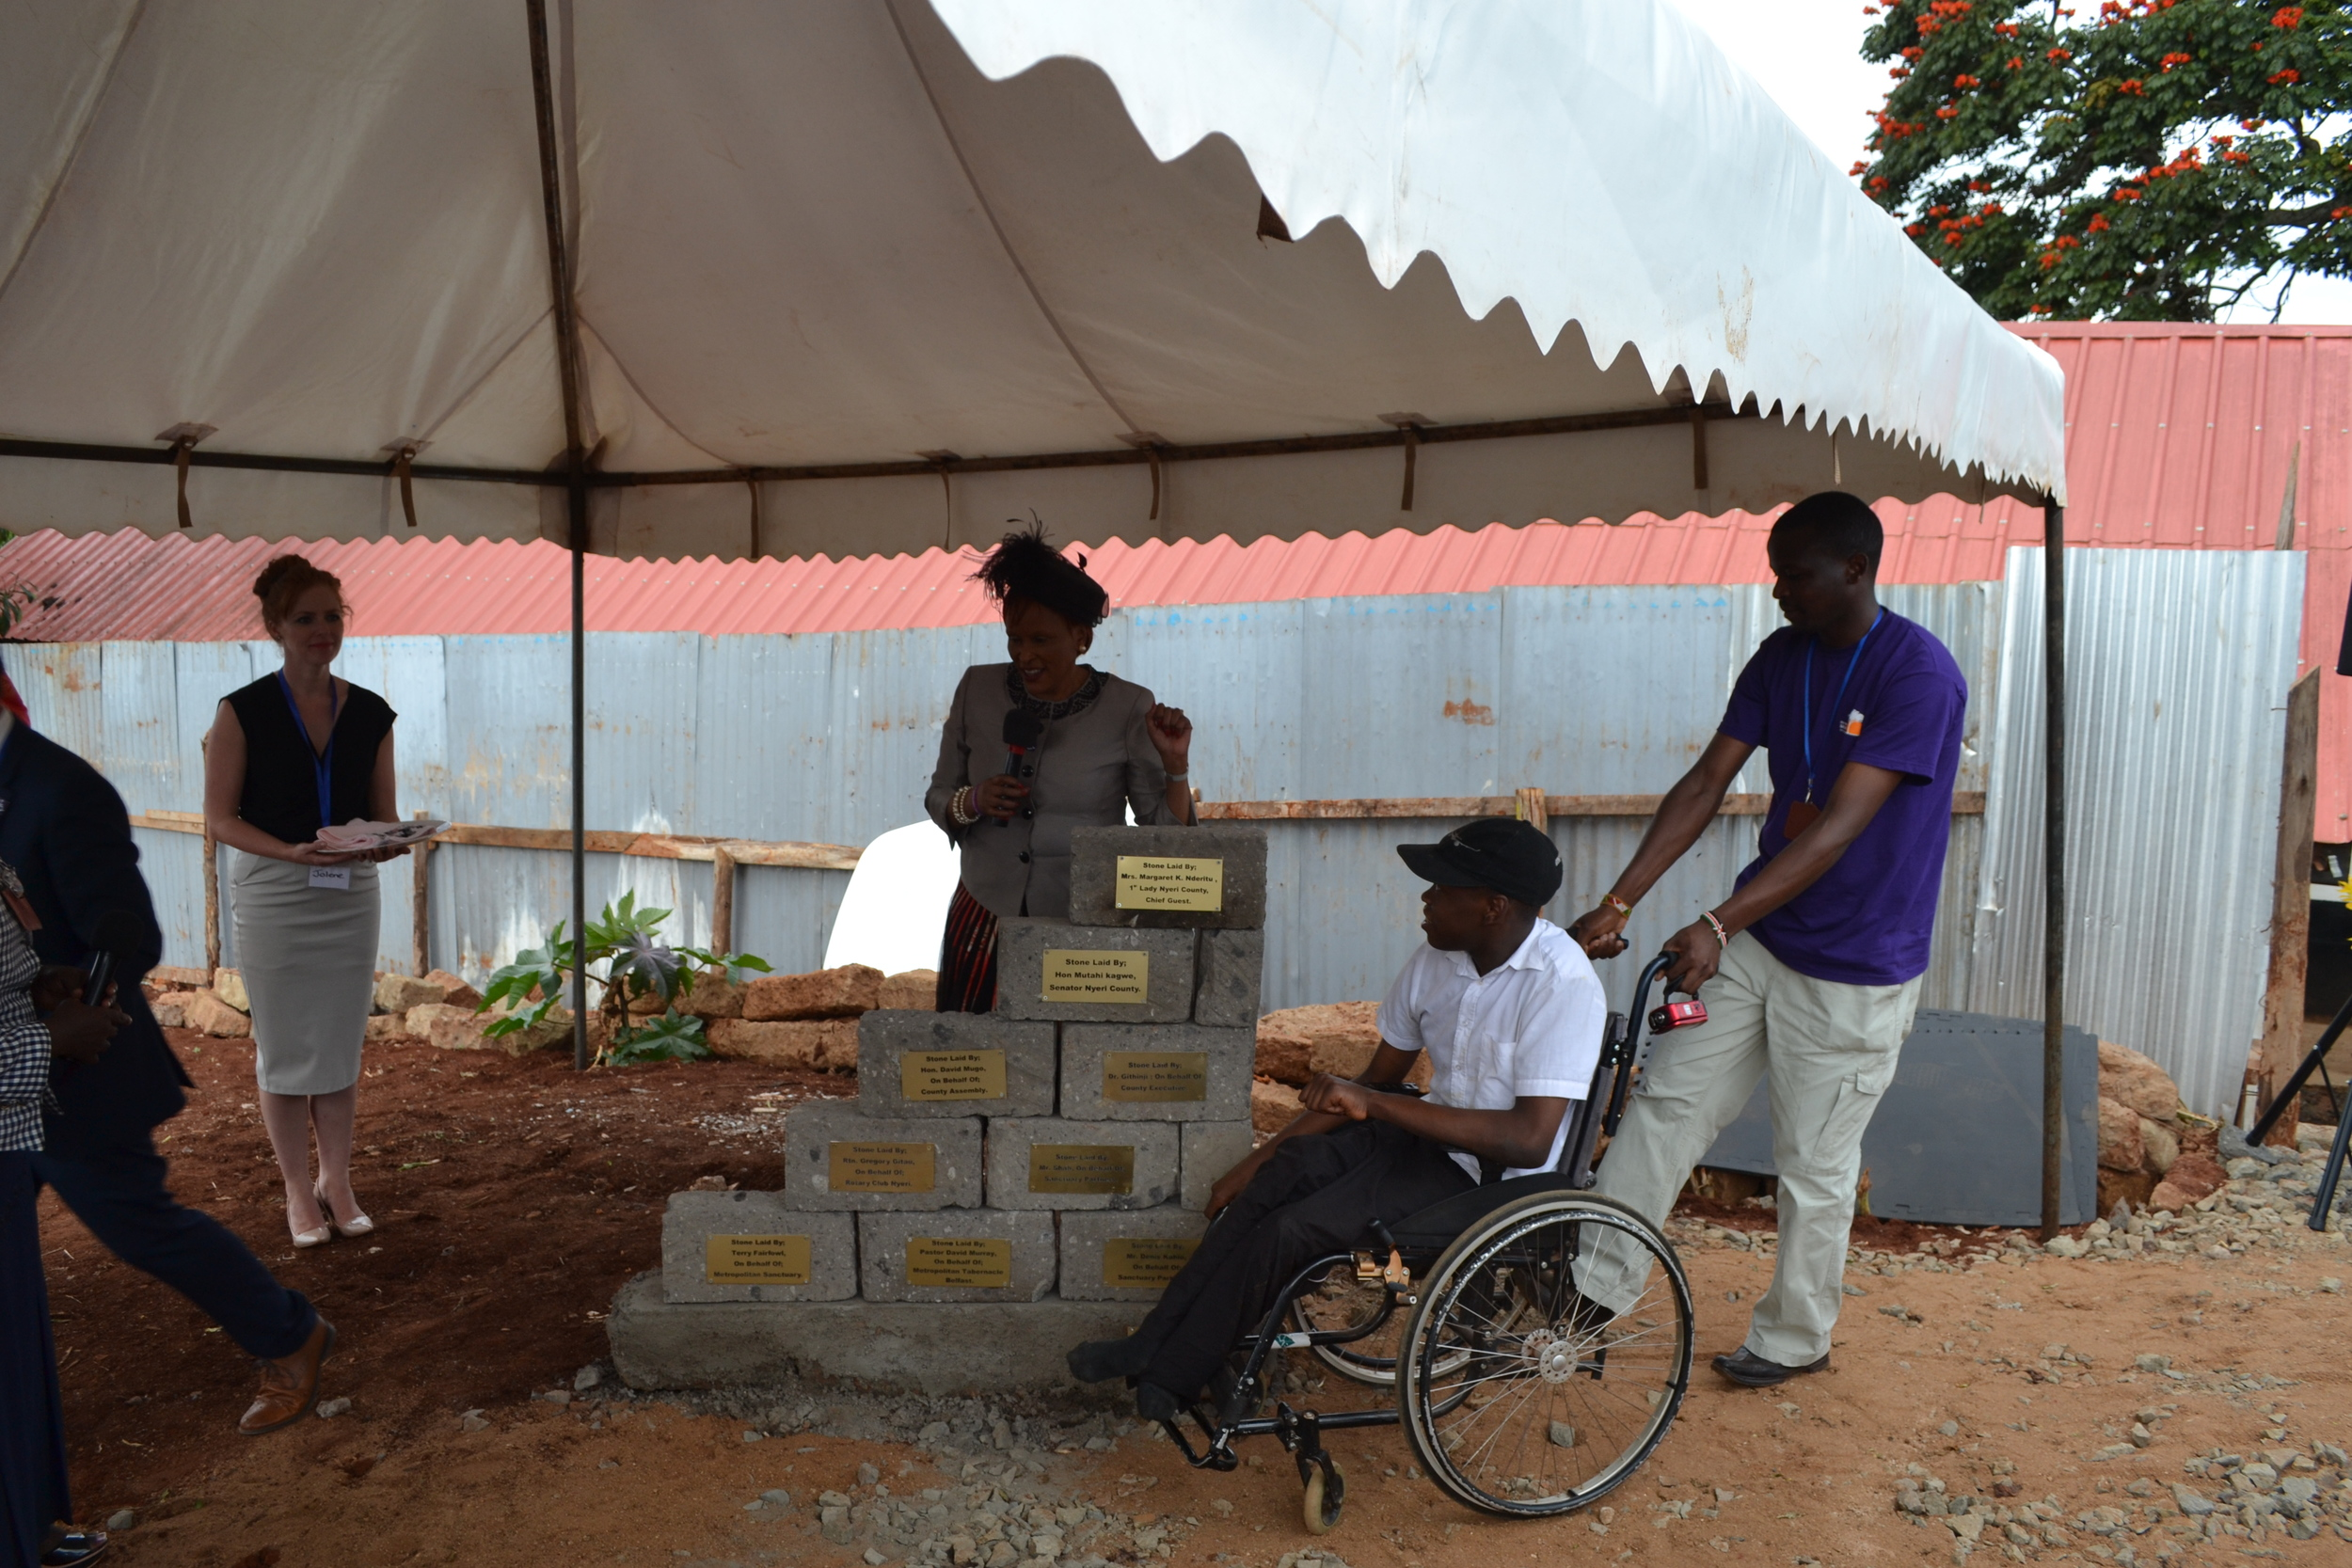 The First Lady of Nyeri County lays a foundation stone, accompanied by Dennis who attends the Metropolitan Sanctuary for therapy and day care.